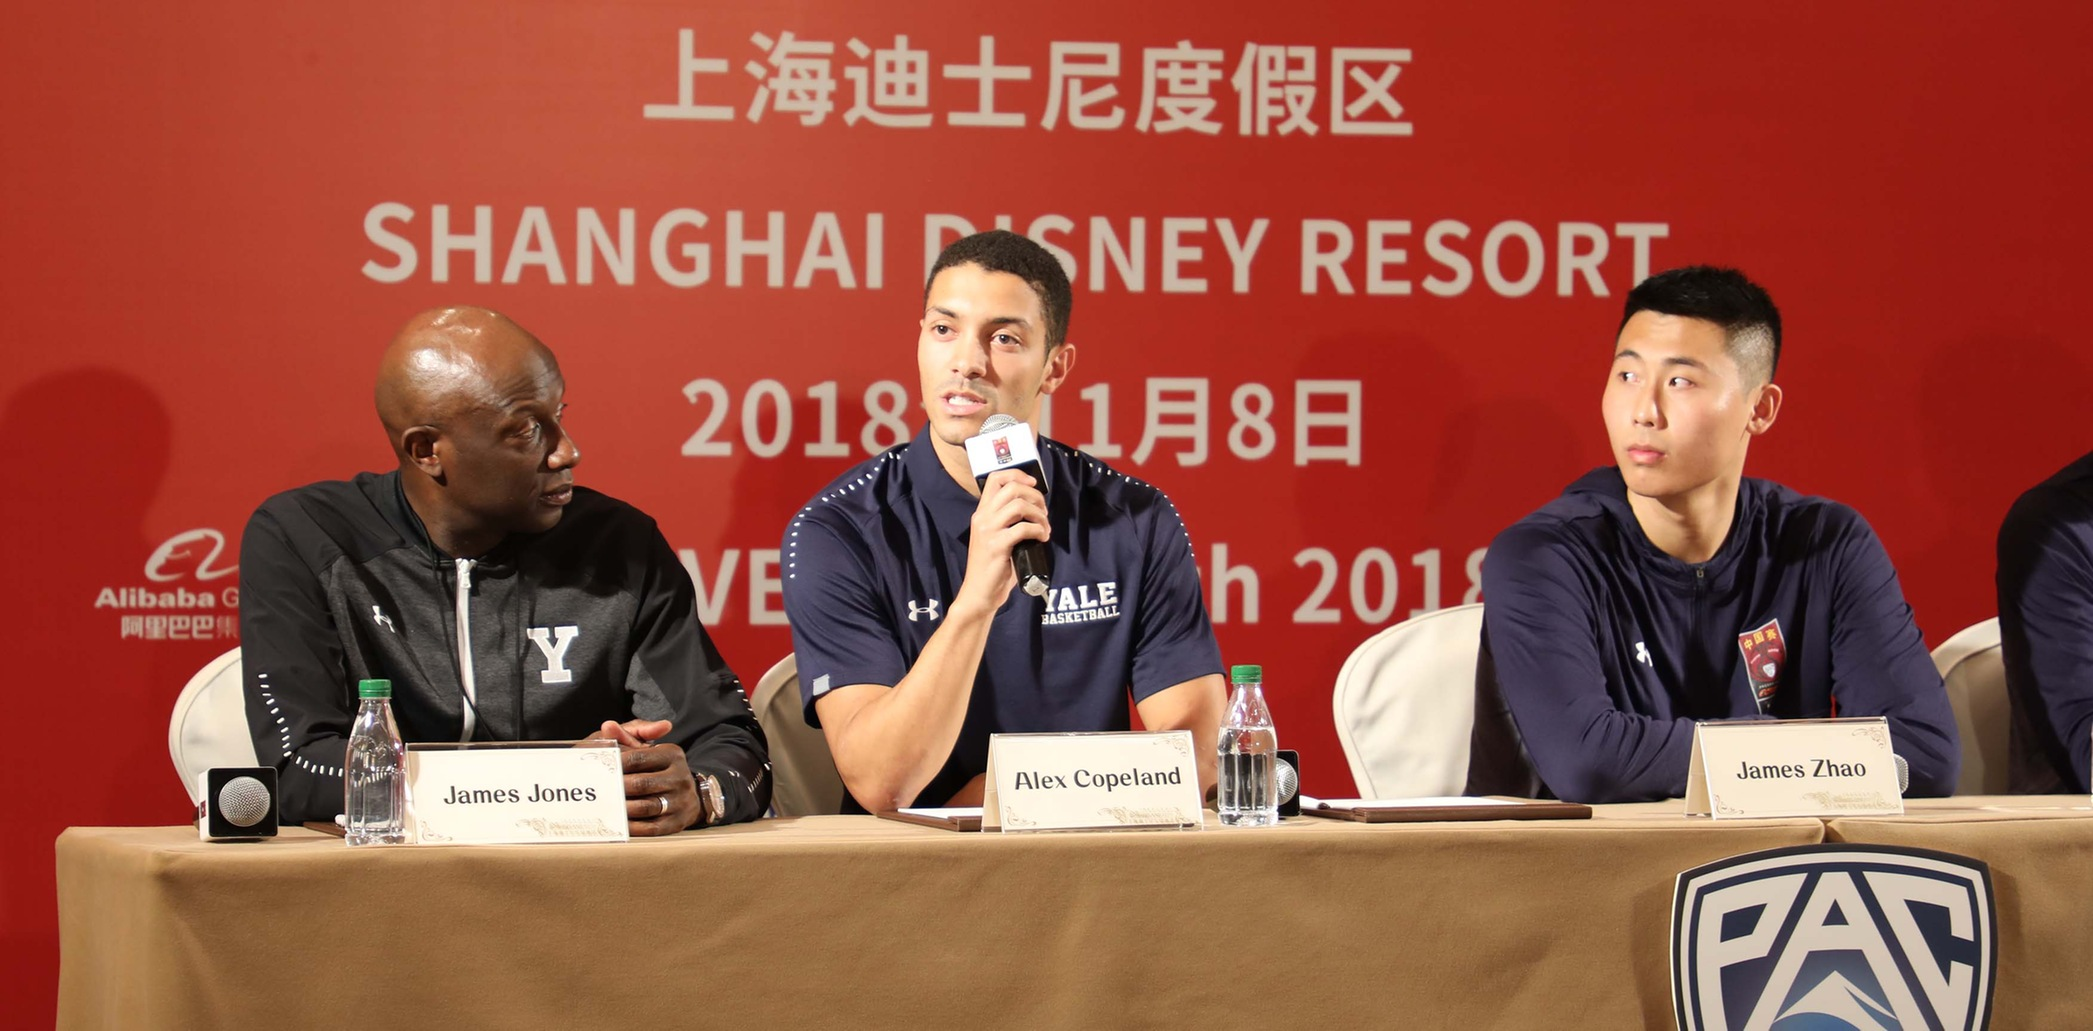 Head Coach James Jones and Alex Copeland at a press conference at Shanghai Disneyland (Tim Bennett photo)